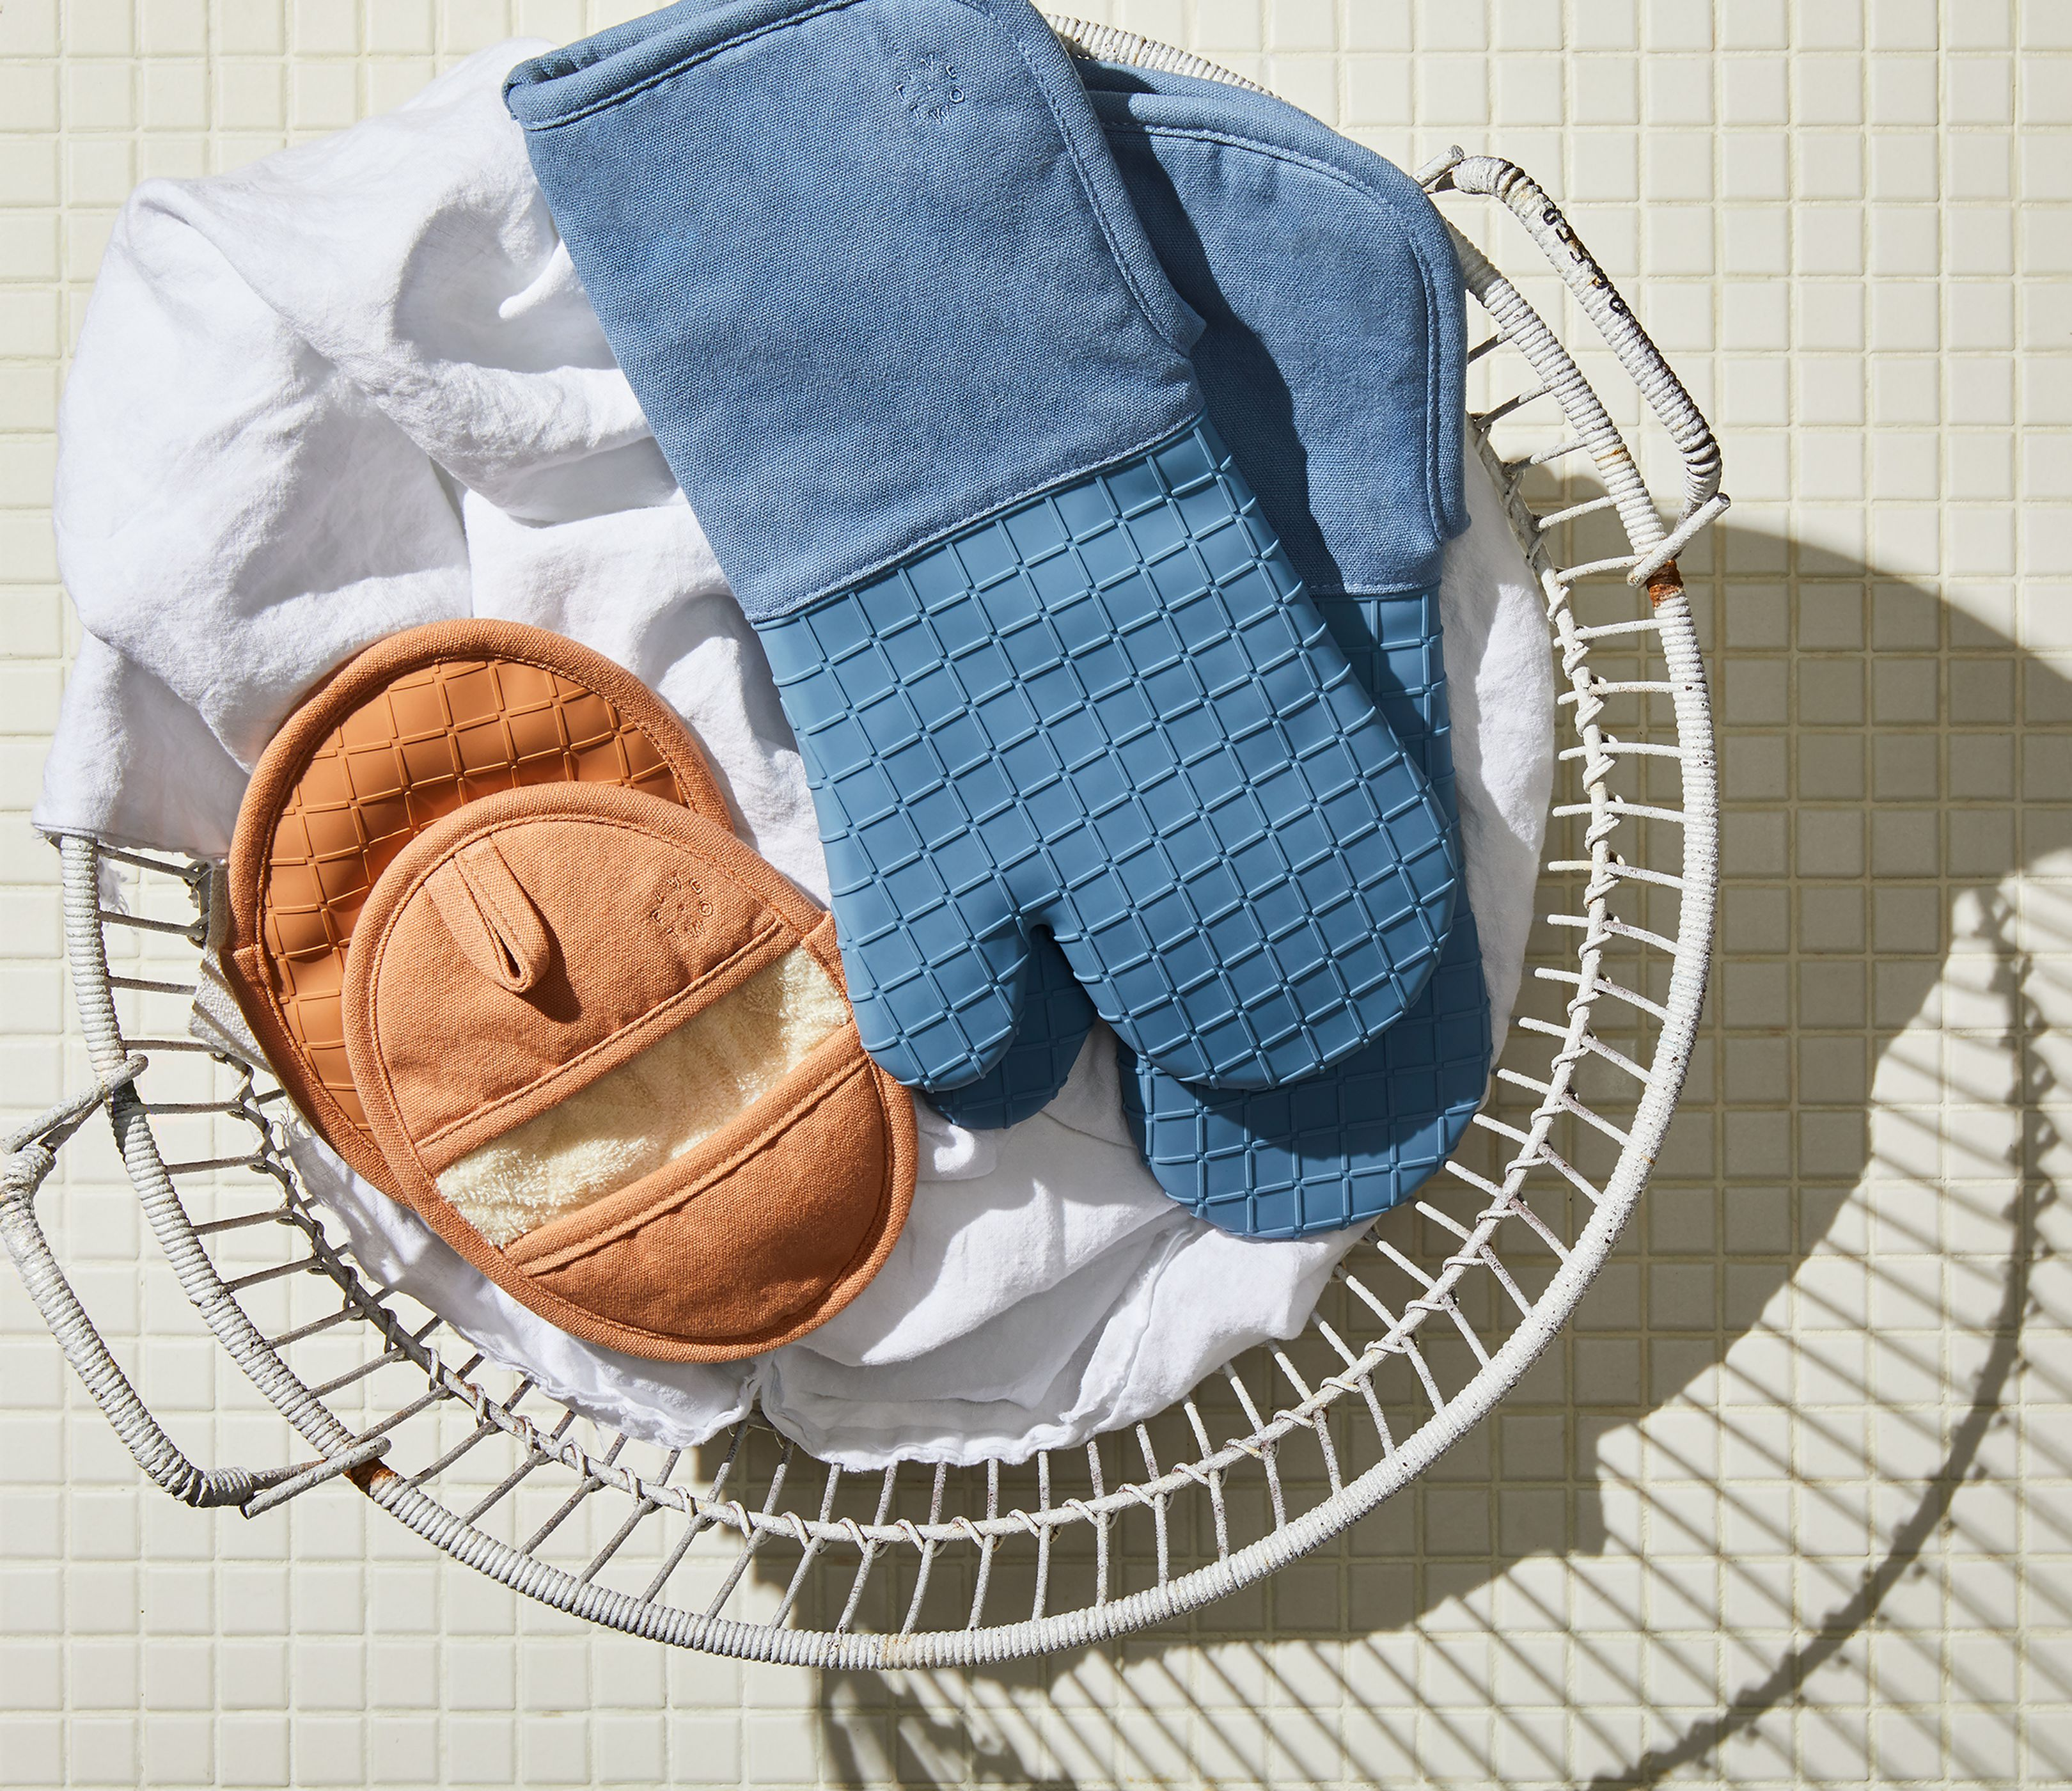 Five Two Silicone Oven Mitts Pot Holders From Food52 On Food52